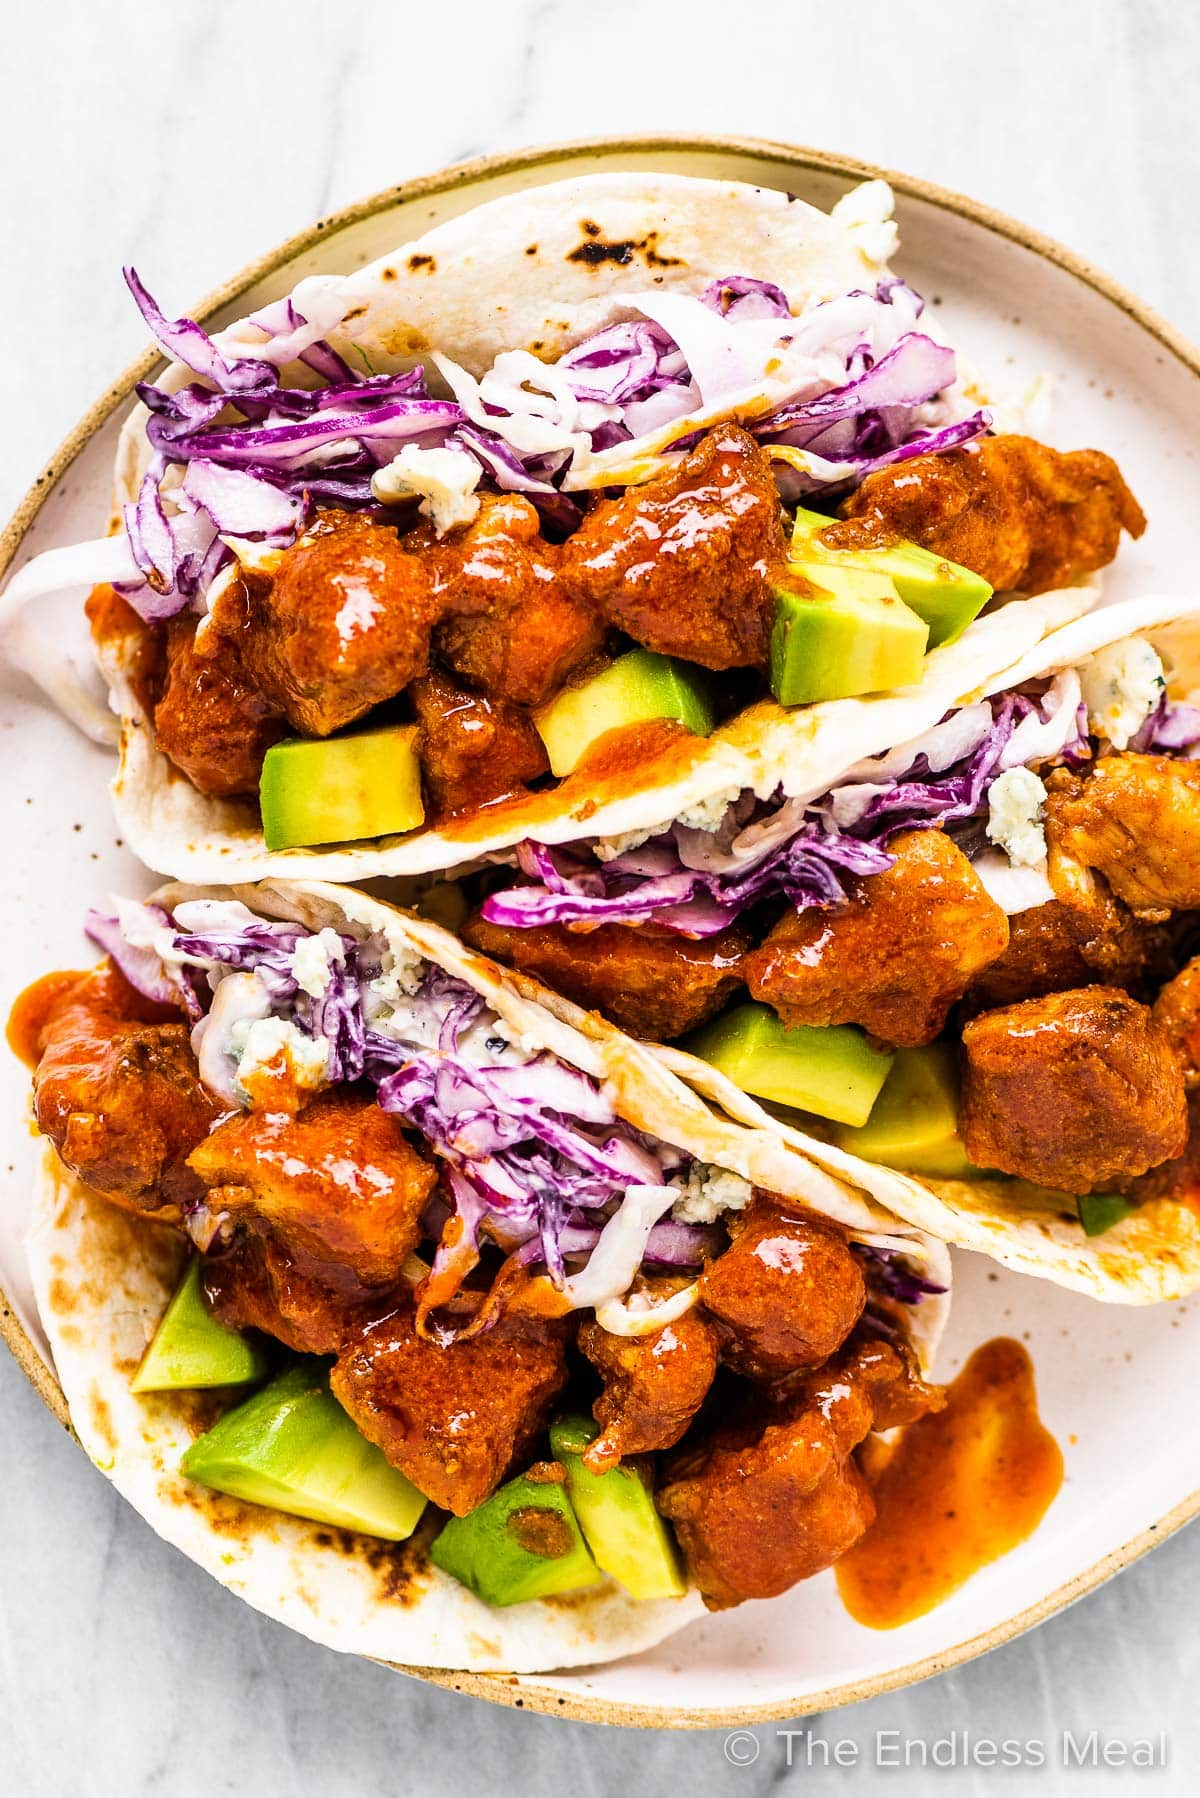 Three buffalo chicken tacos on a plate with coleslaw and avocados.